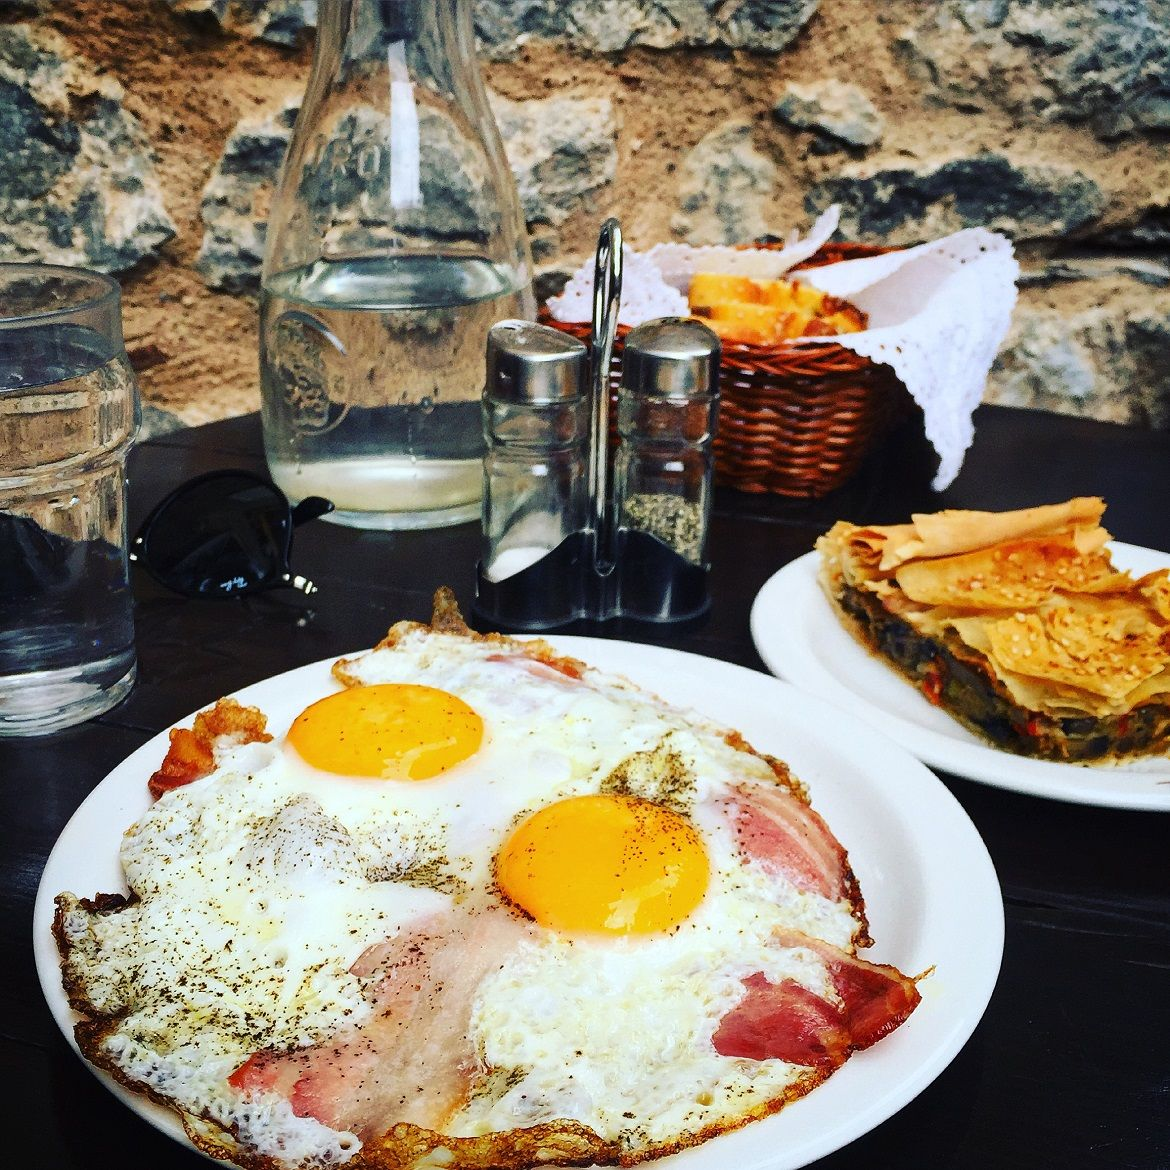 """Yummy late breakfast with eggs, bacon, plus a delicious mushroom pie at """"En Arachovi"""" easy-going little cafe"""